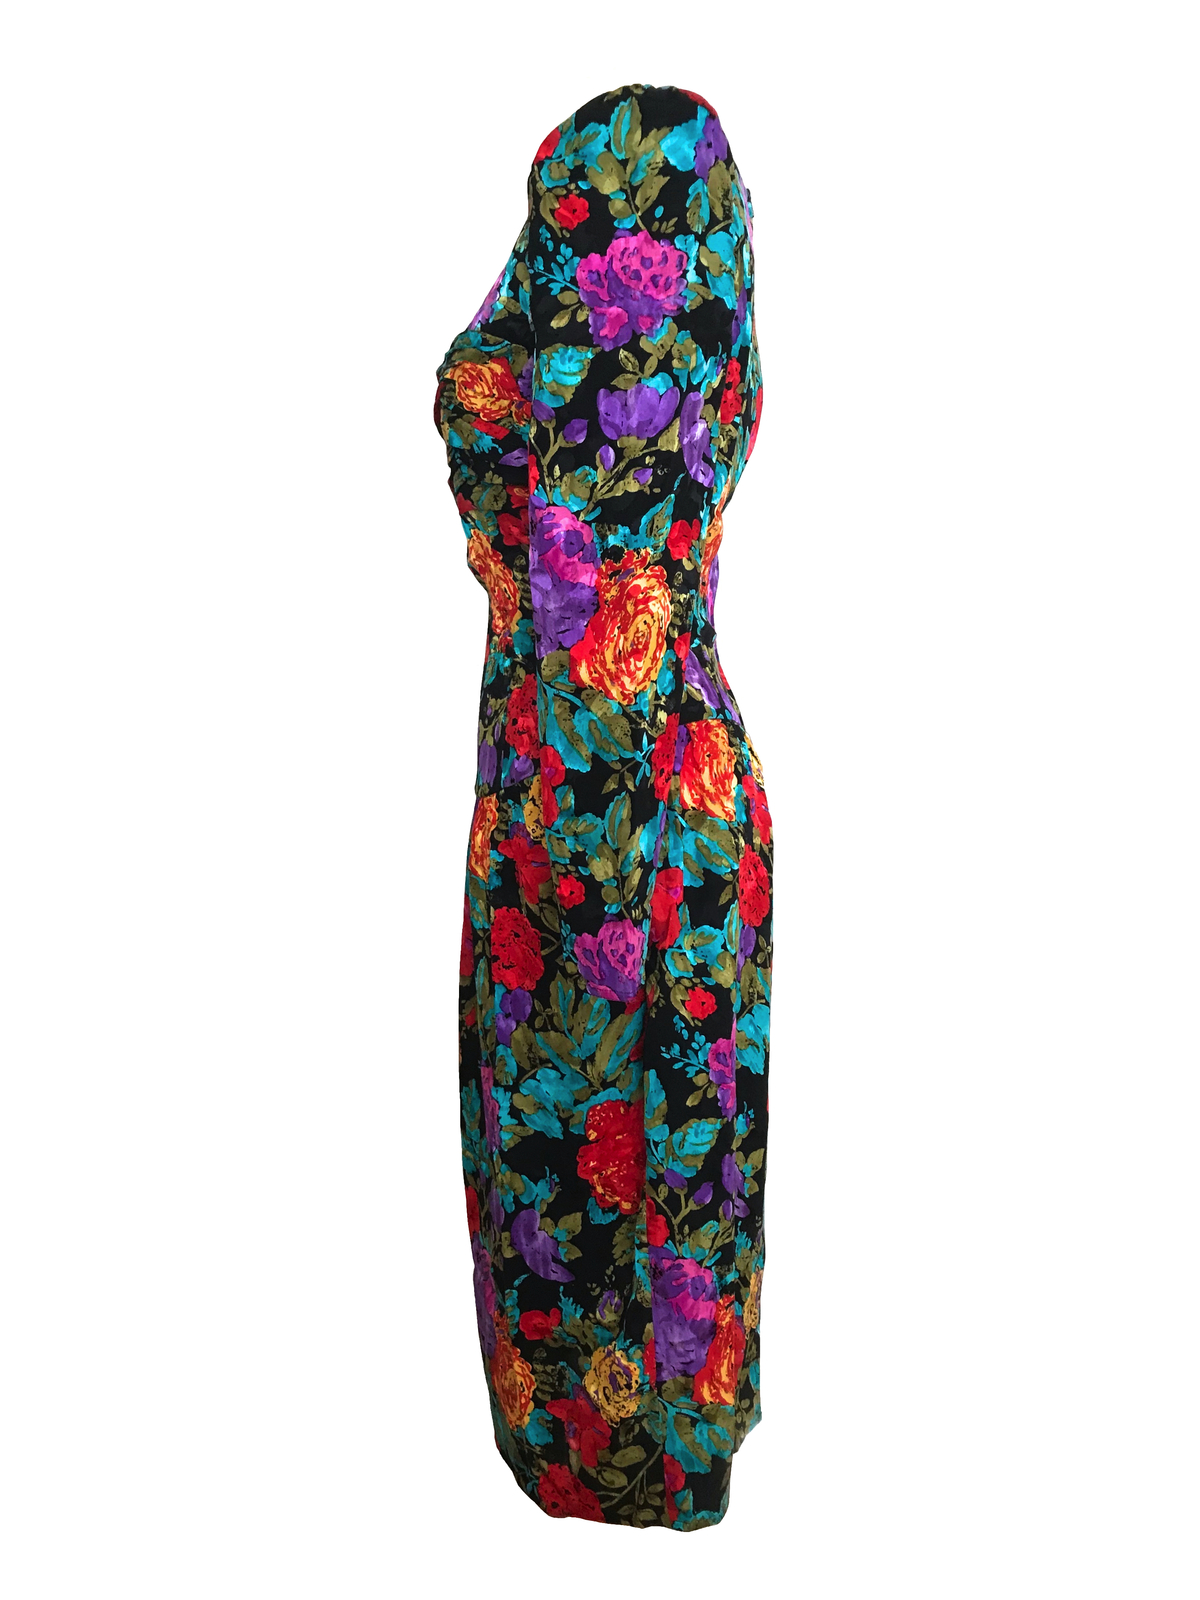 80s Vtg 100% Silk Maggy London Floral Ruched Wiggle Bombshell Cocktail Dress S